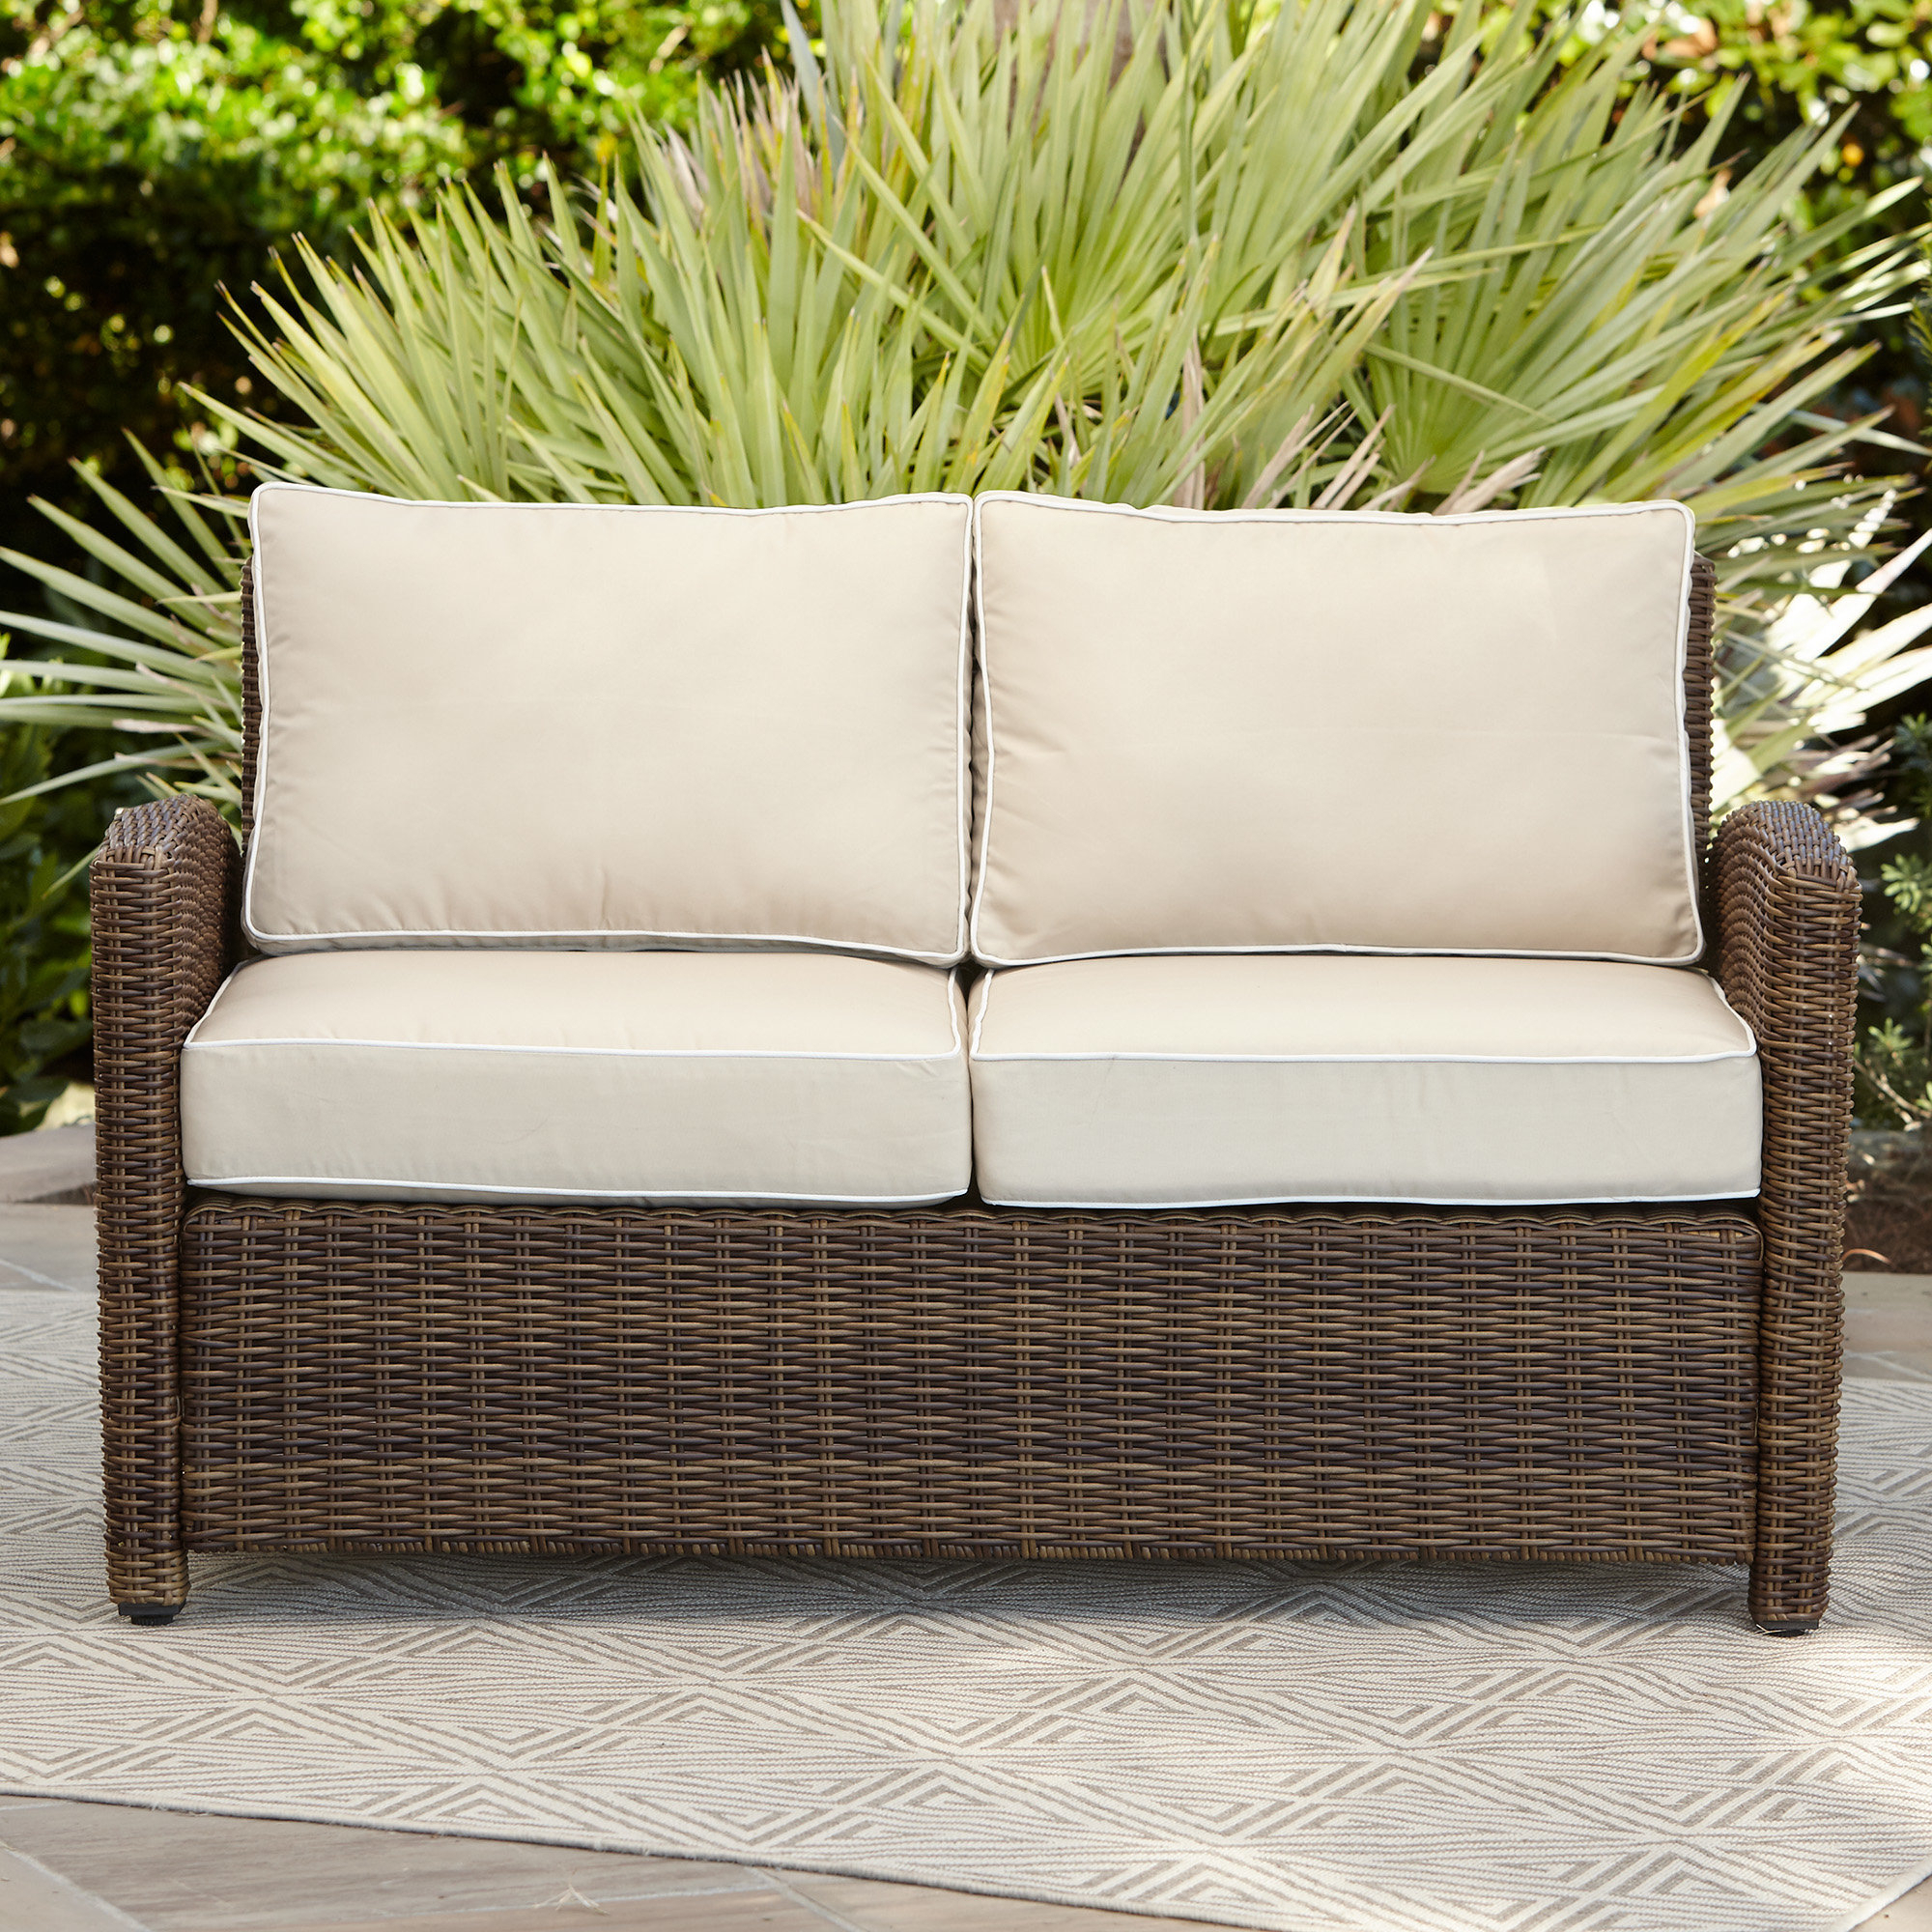 Wayfair Regarding Sylvania Outdoor Loveseats (View 20 of 20)